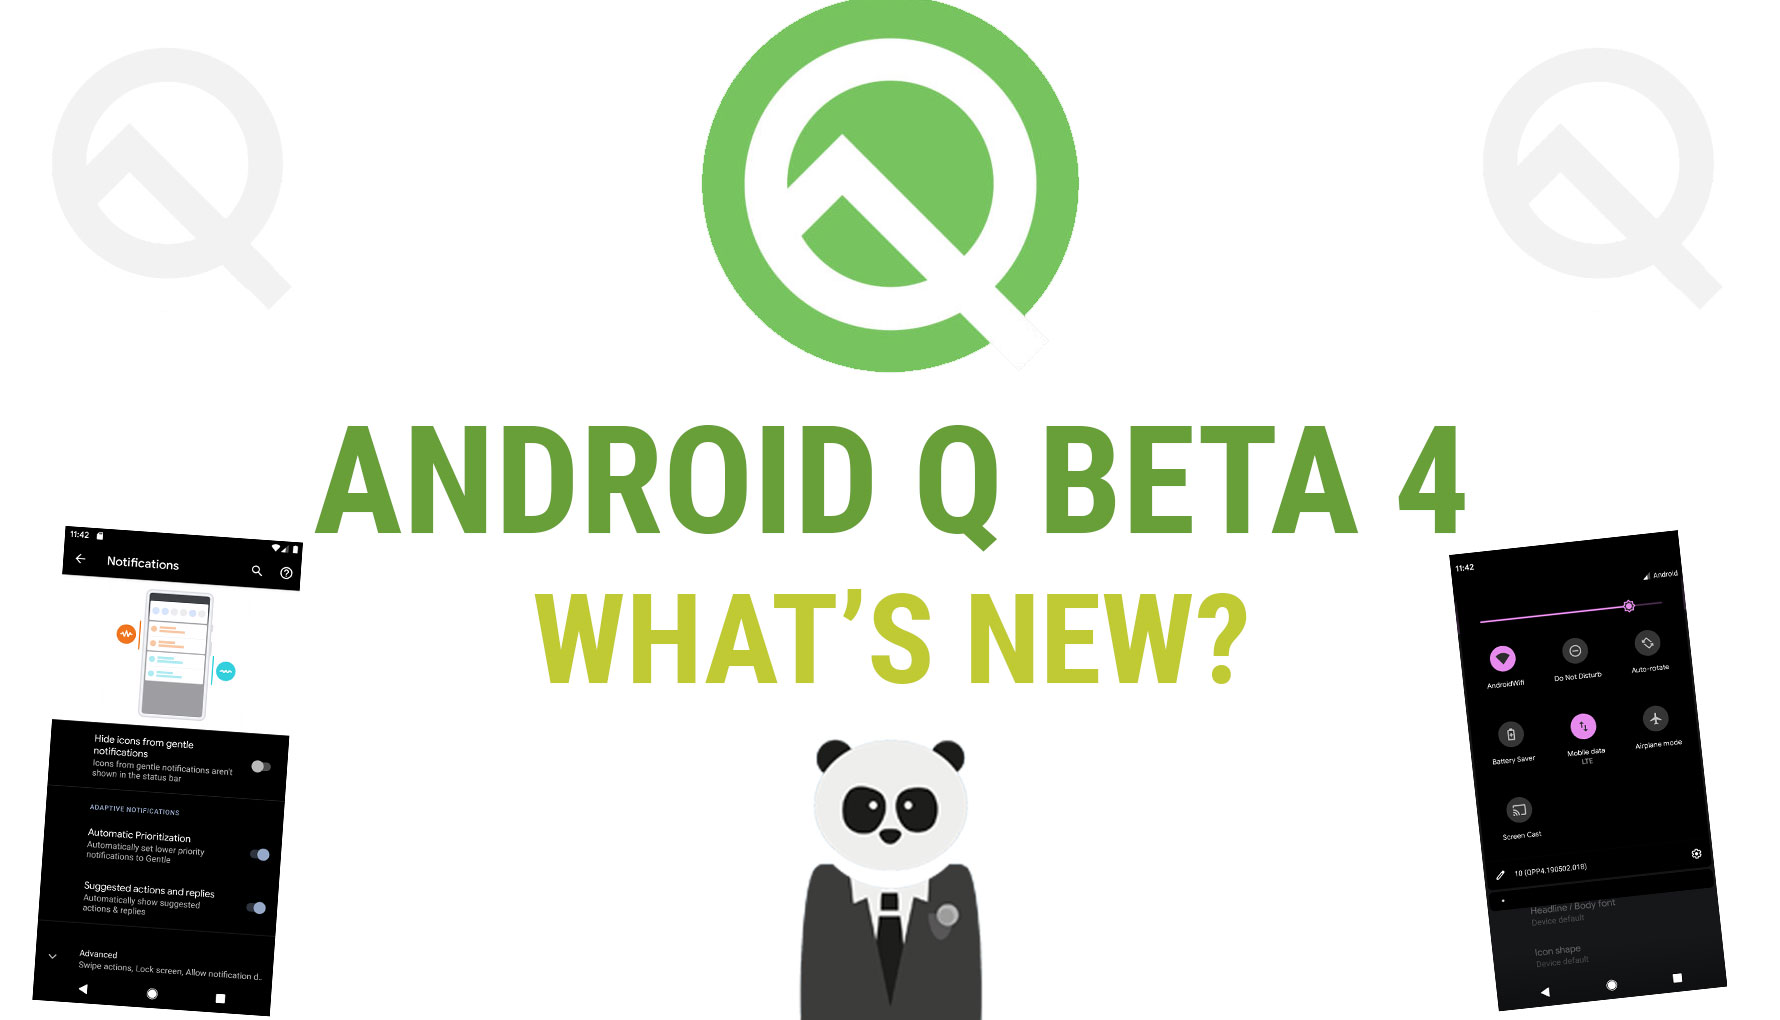 What's New in Android Q Beta 4?